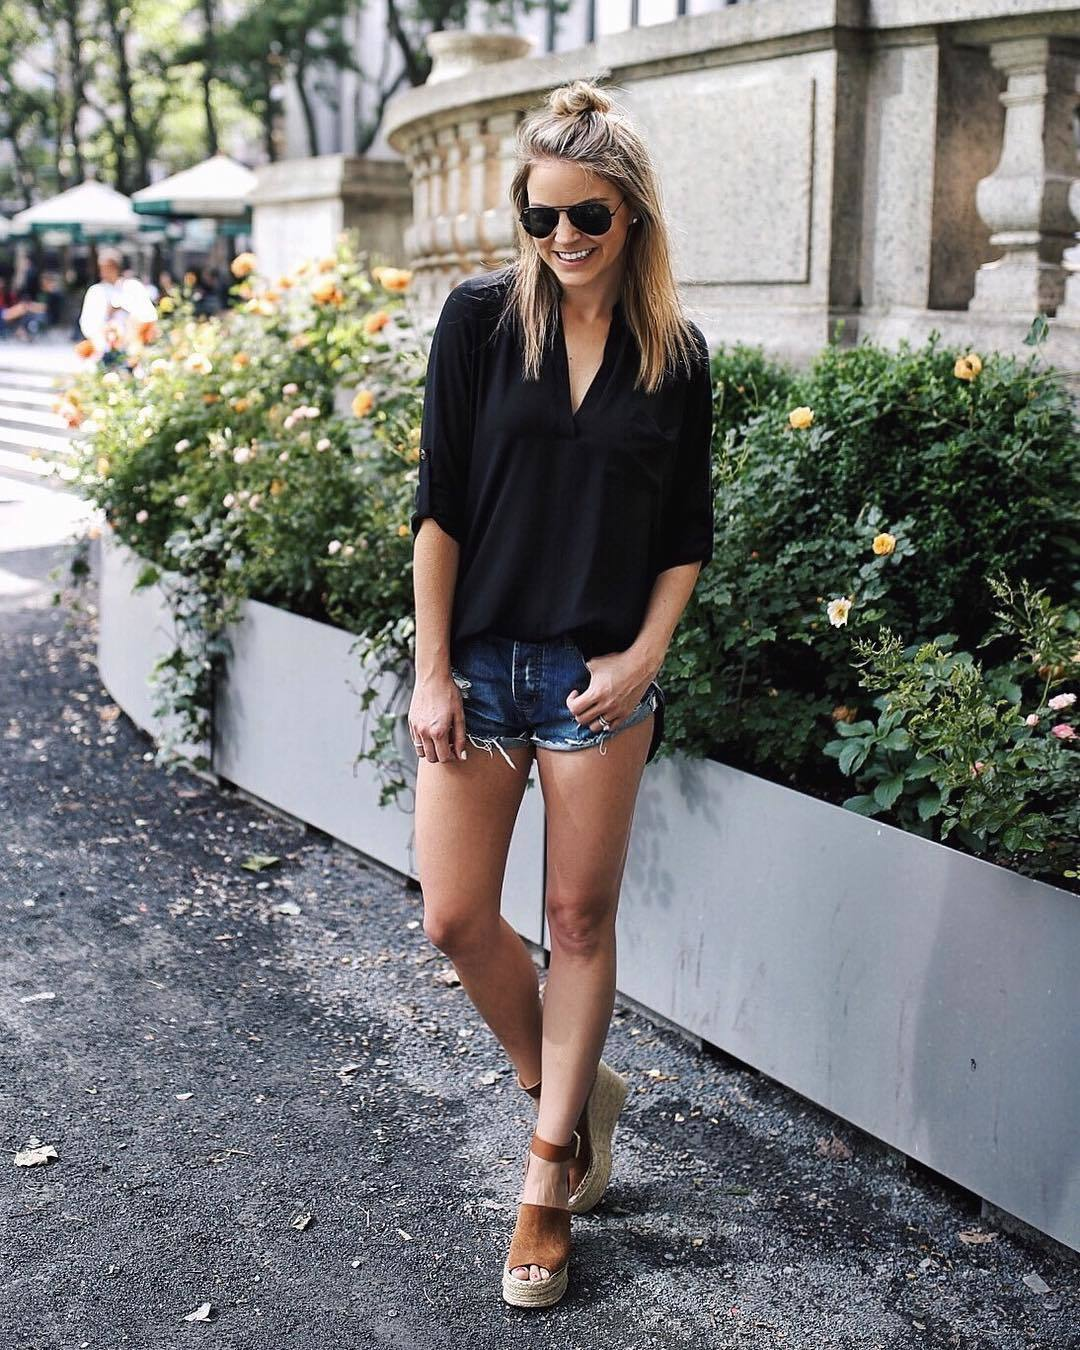 Fashion week How to wedge wear sandals with shorts for lady